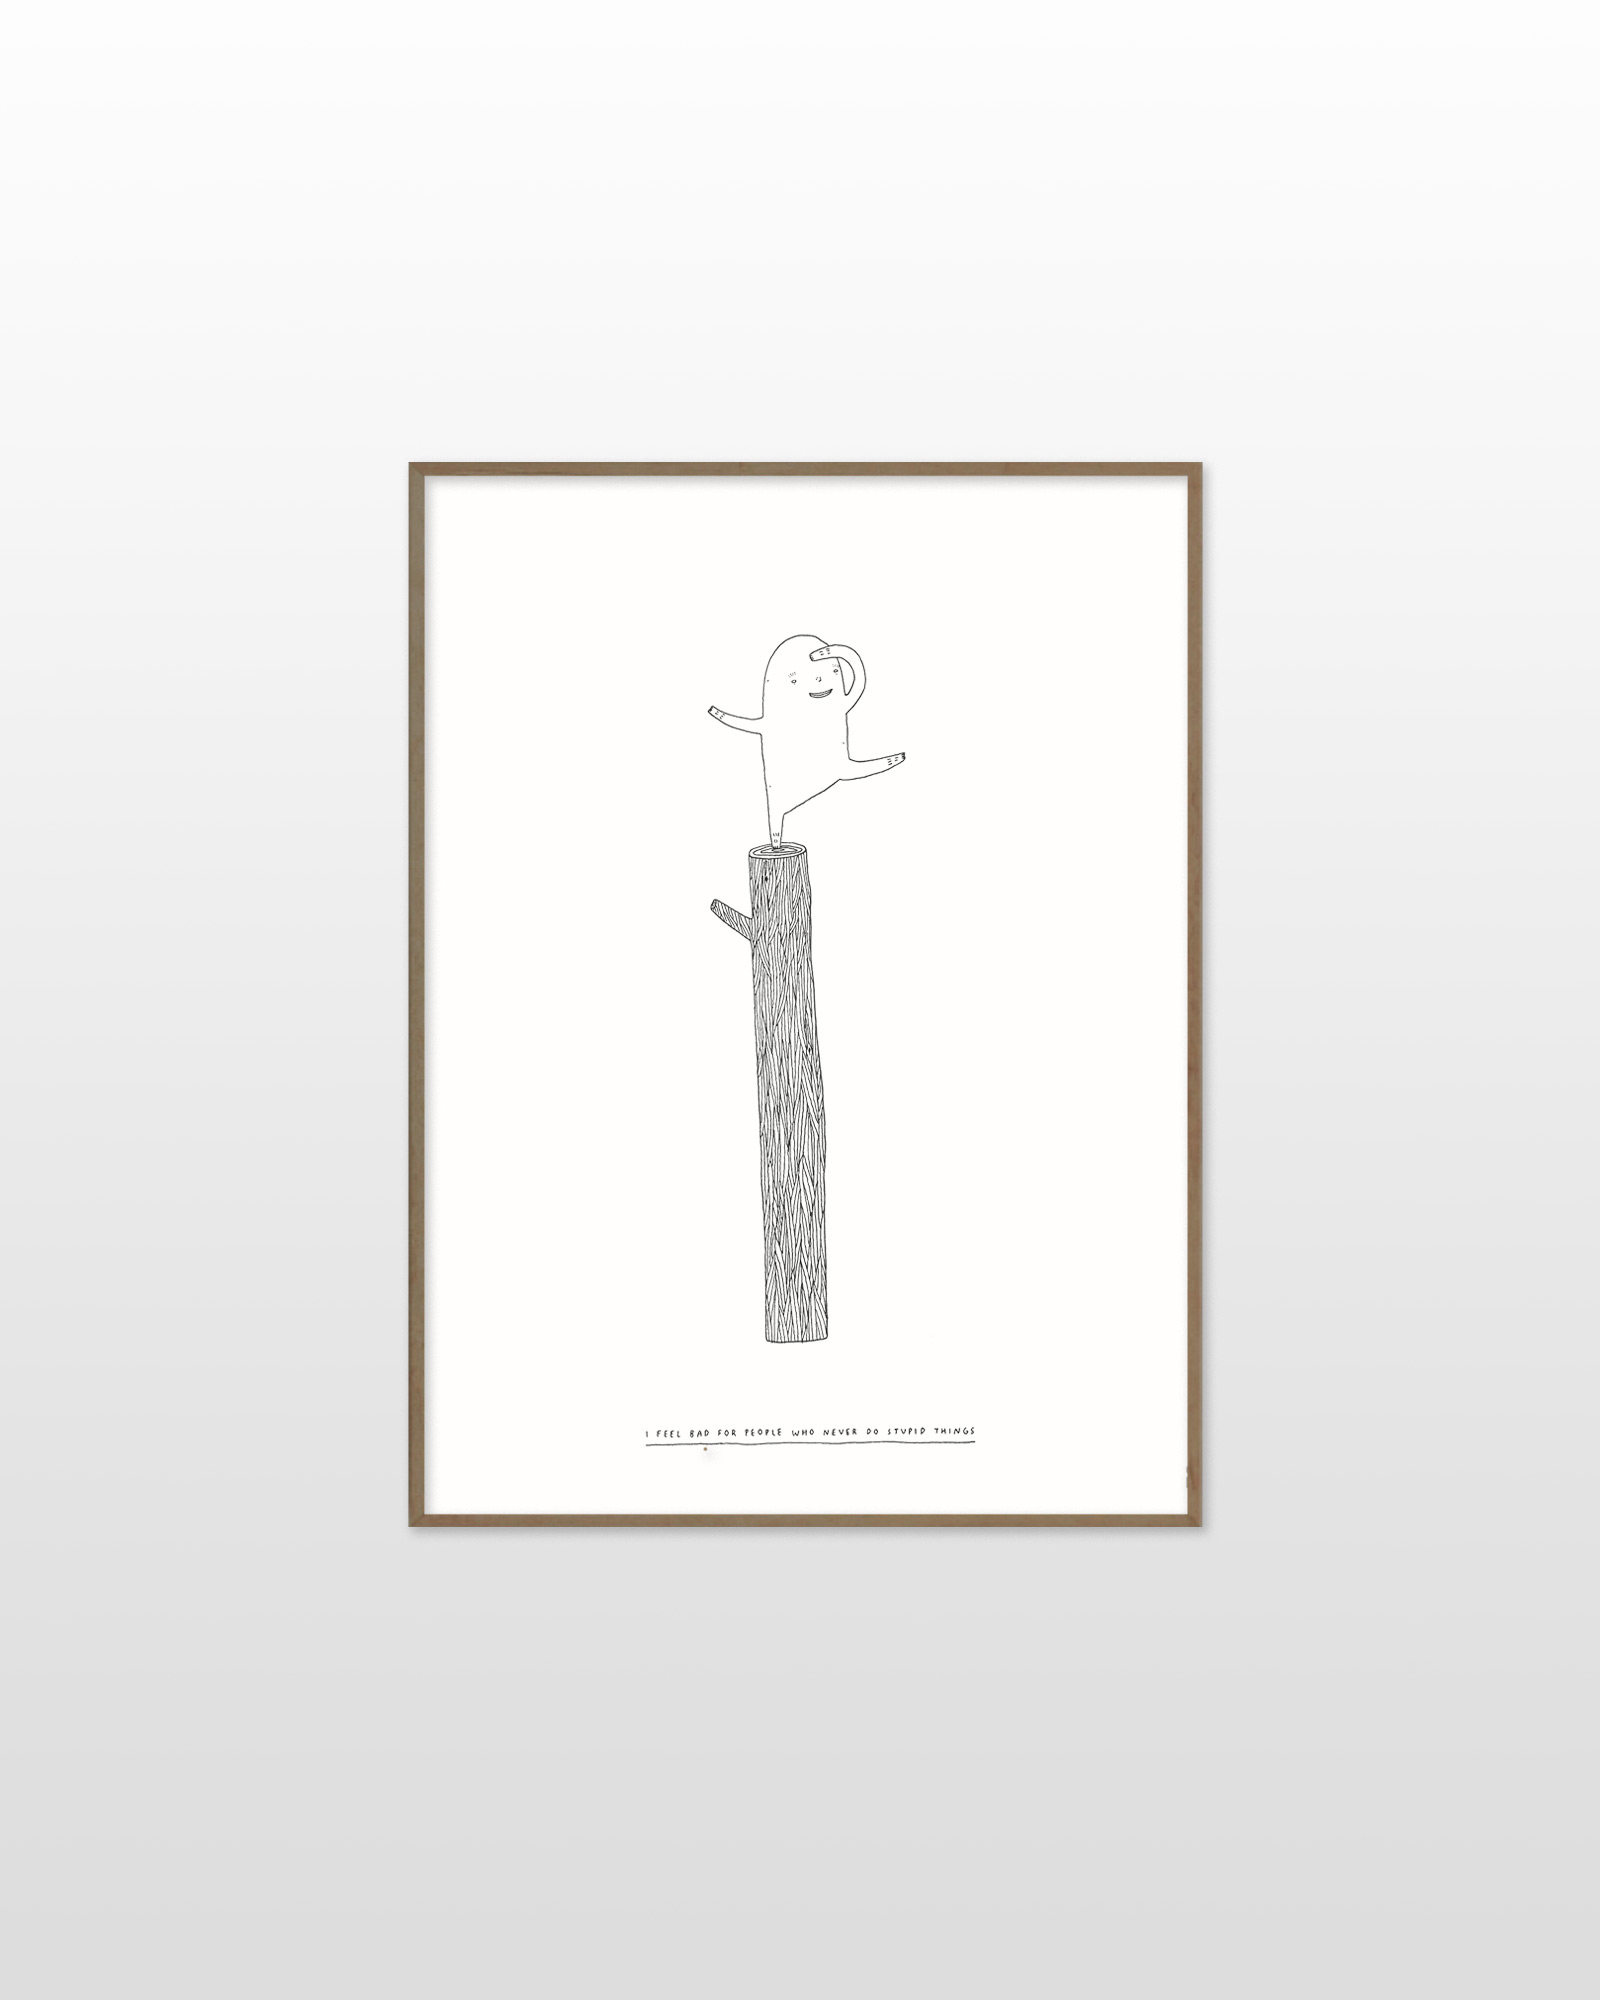 posters-prints, giclee-print, family-friendly, illustrative, minimalistic, monochrome, cartoons, humor, black, white, ink, paper, amusing, black-and-white, contemporary-art, cute, danish, decorative, design, interior, interior-design, modern, modern-art, nordic, posters, prints, scandinavien, Buy original high quality art. Paintings, drawings, limited edition prints & posters by talented artists.